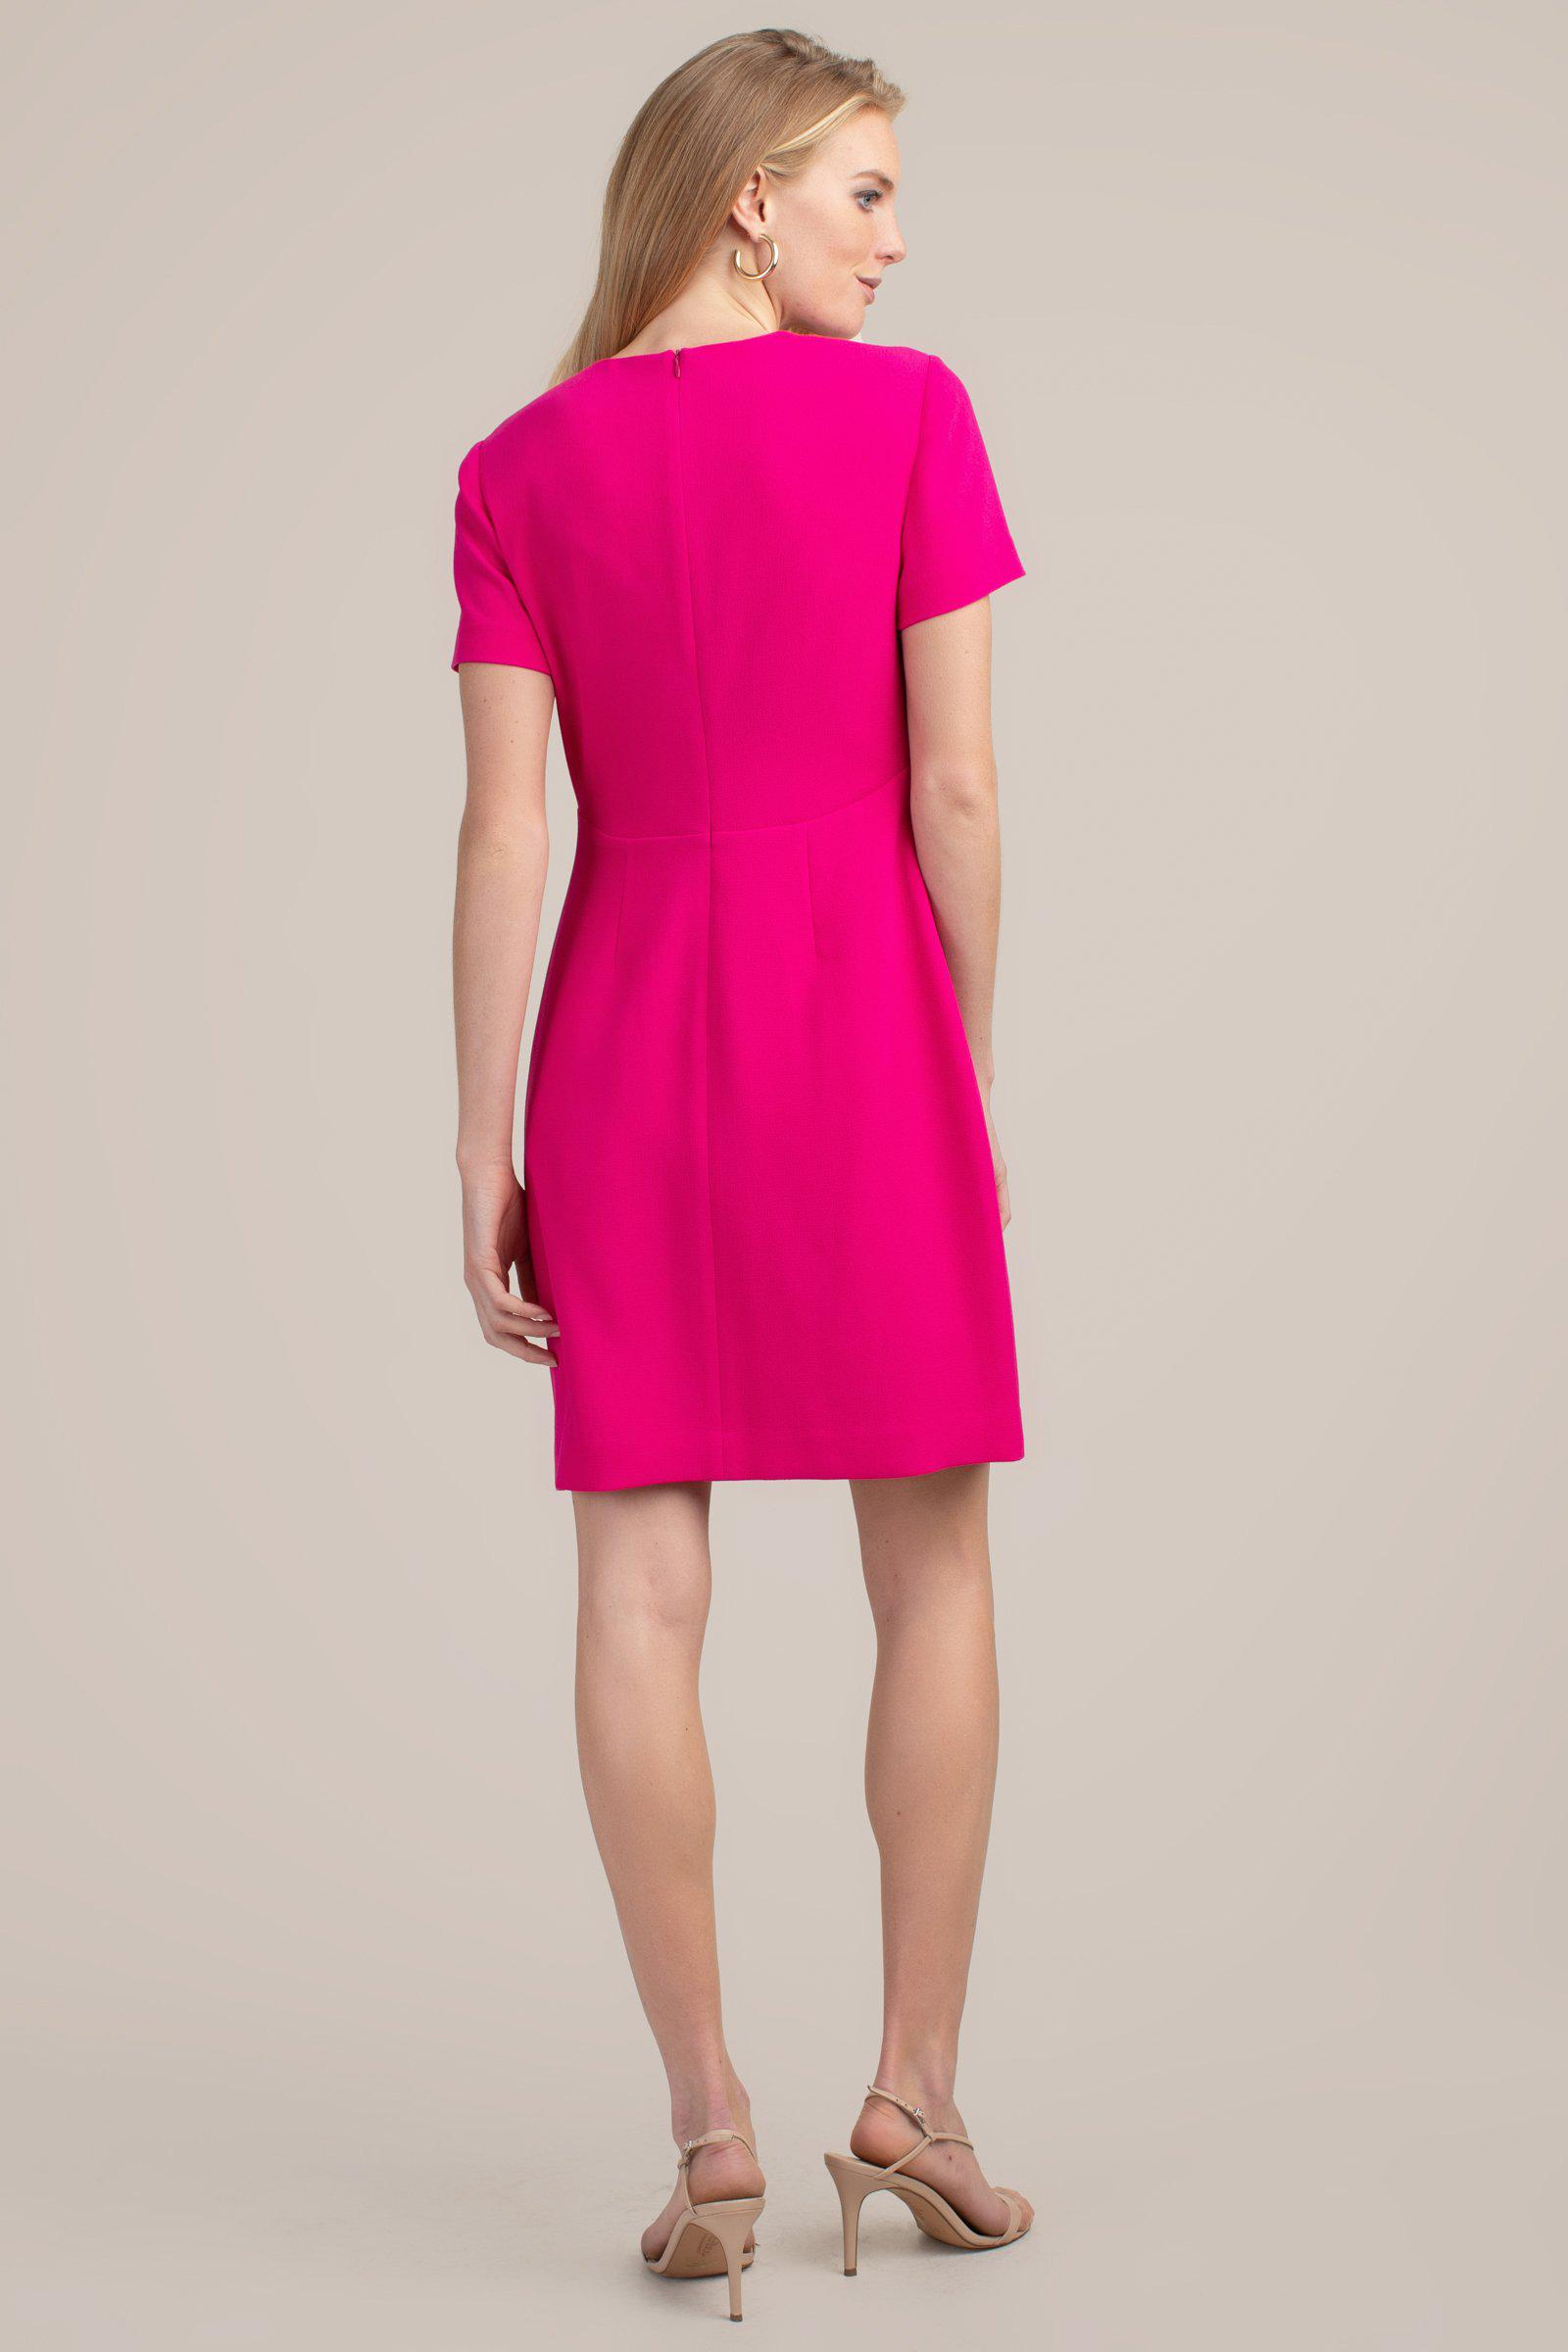 CONTRACT DRESS 1